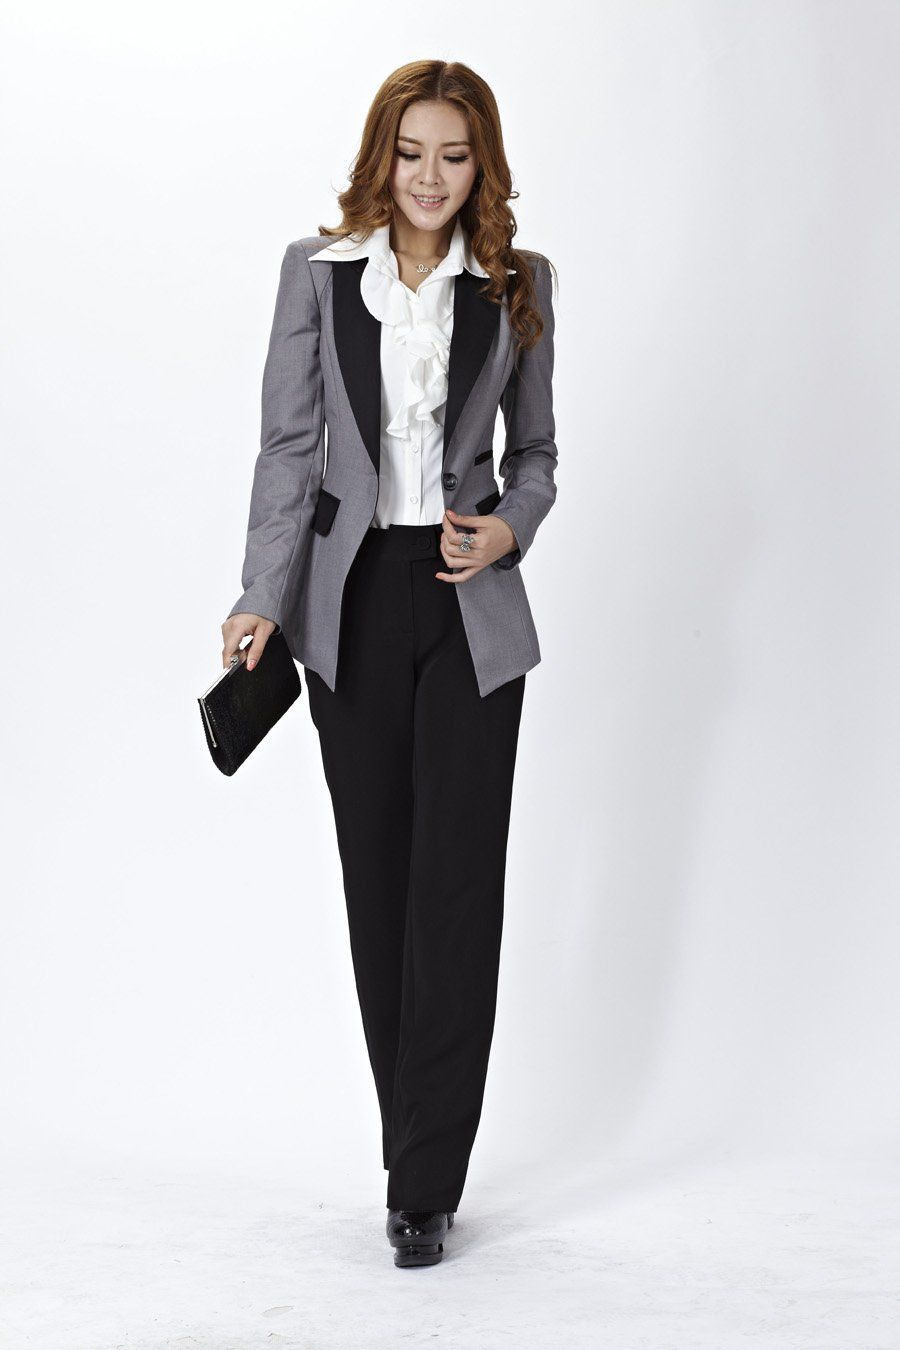 ladies pant suits | 2012 New Women Suits Blazer & Pants for OL ...